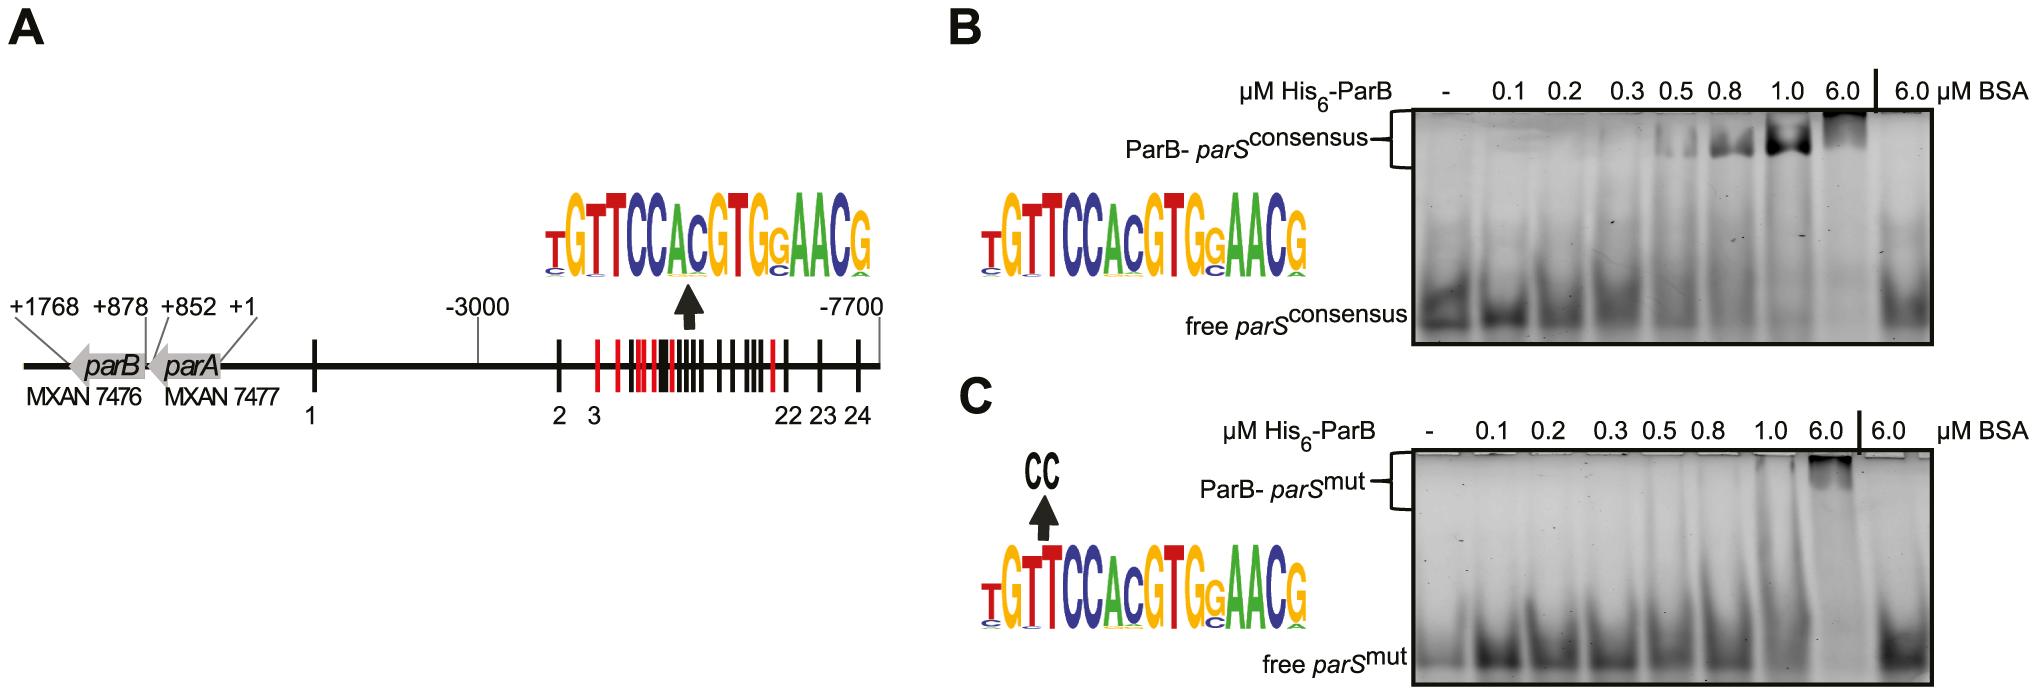 The <i>M. xanthus</i> genome encodes a <i>parABS</i> locus and contains 24 <i>parS</i> sequences in the <i>ori</i> proximal region.